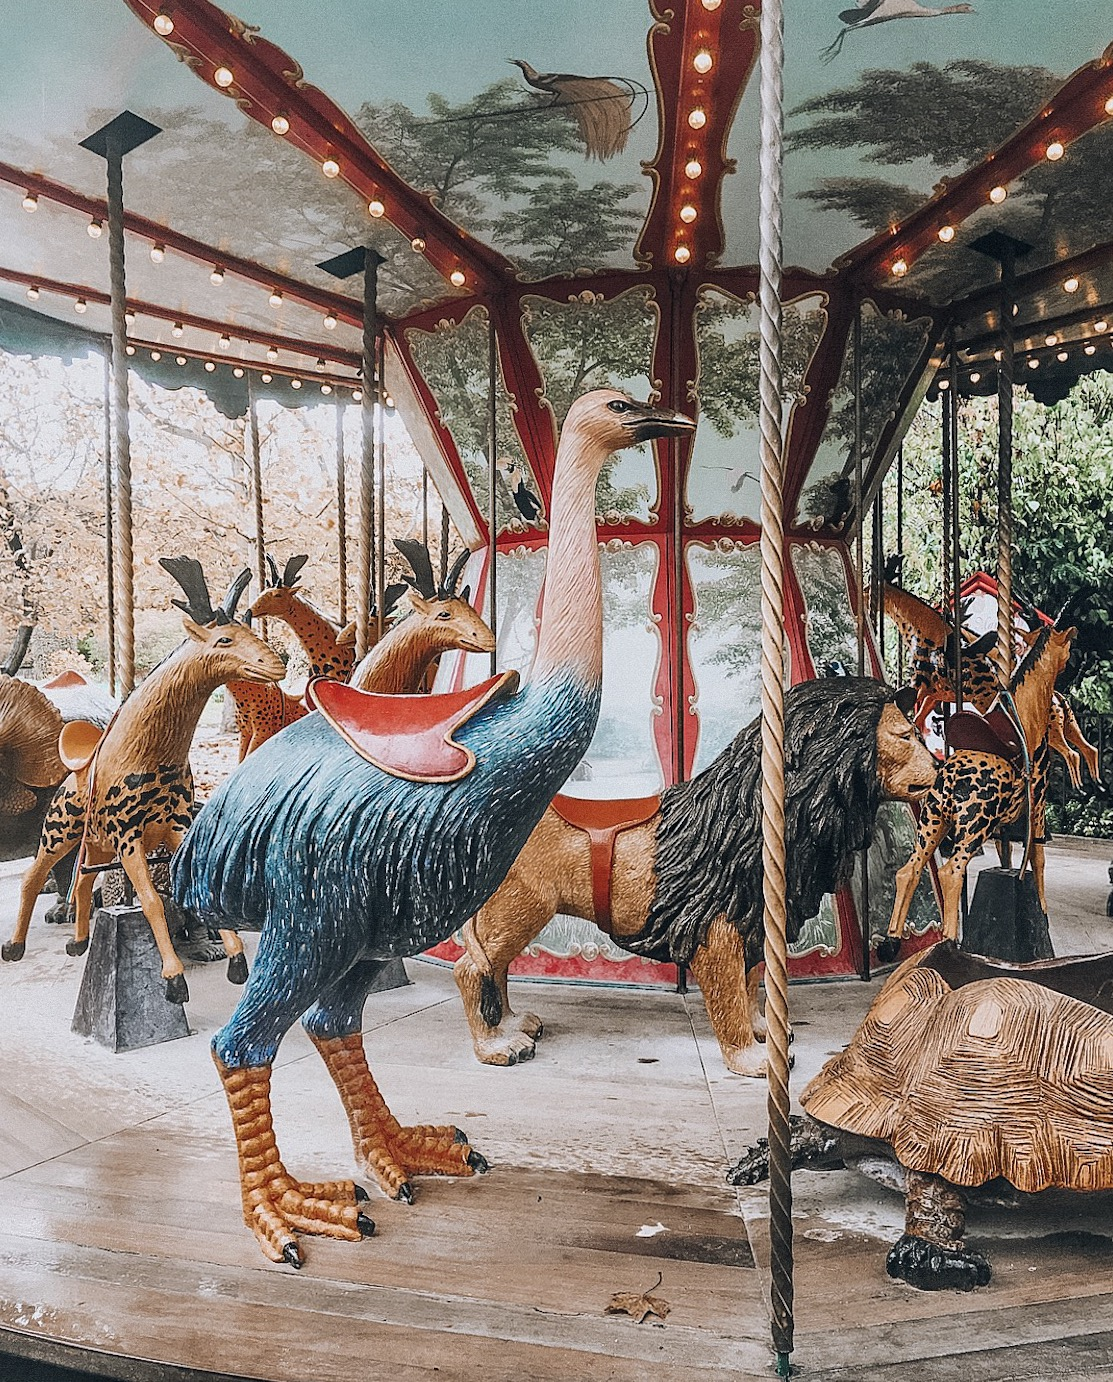 Dodo Manège carousel - unique things to do in Paris, unusual things to do in Paris, quirky things to do in Paris